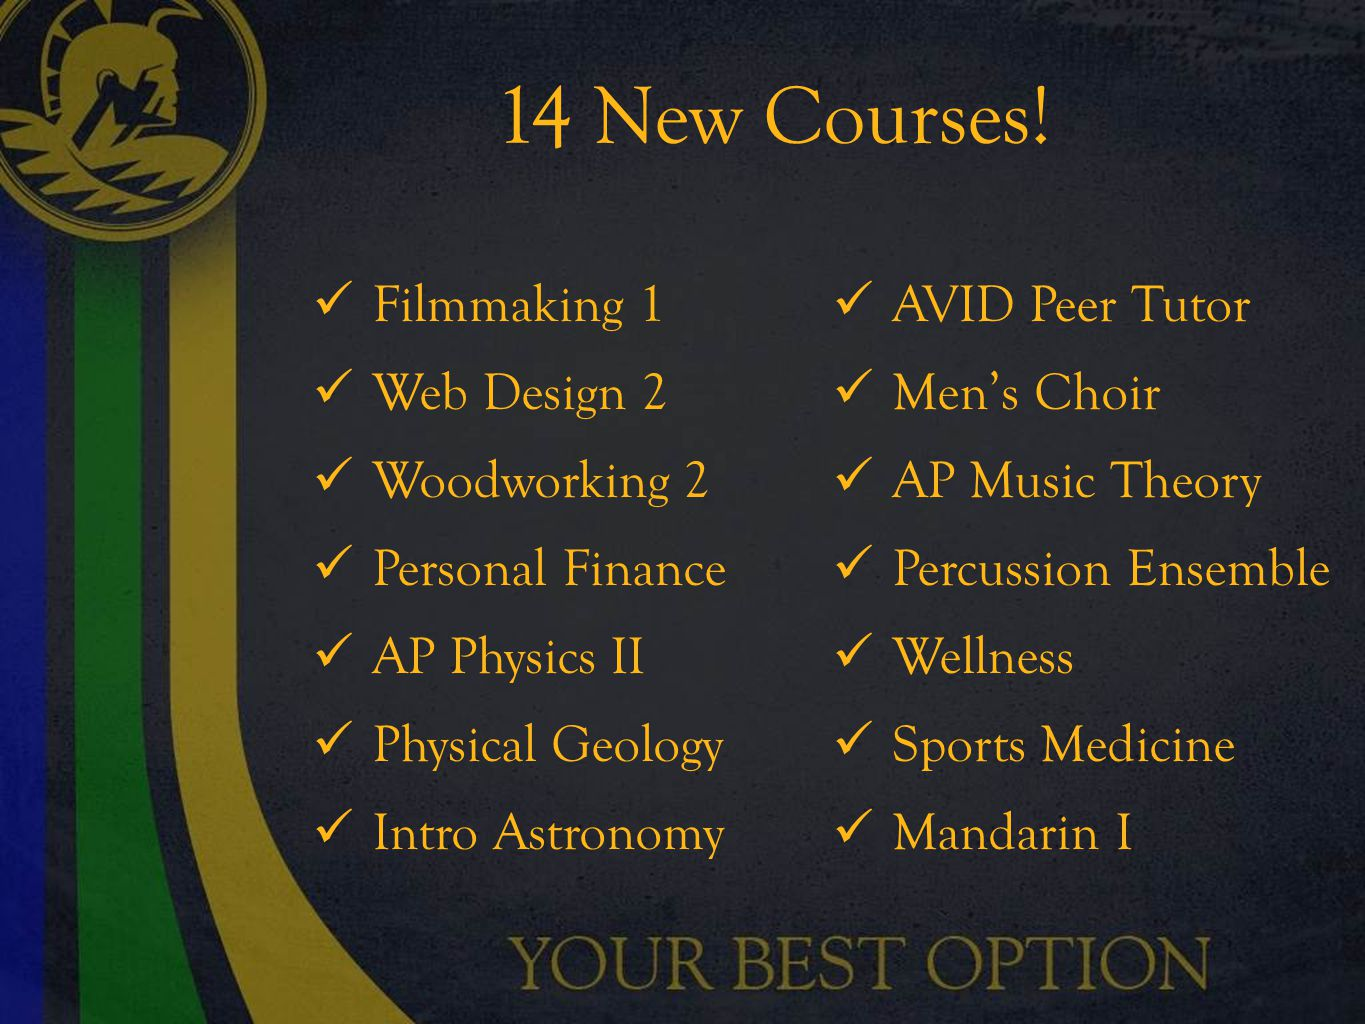 14 New Courses.